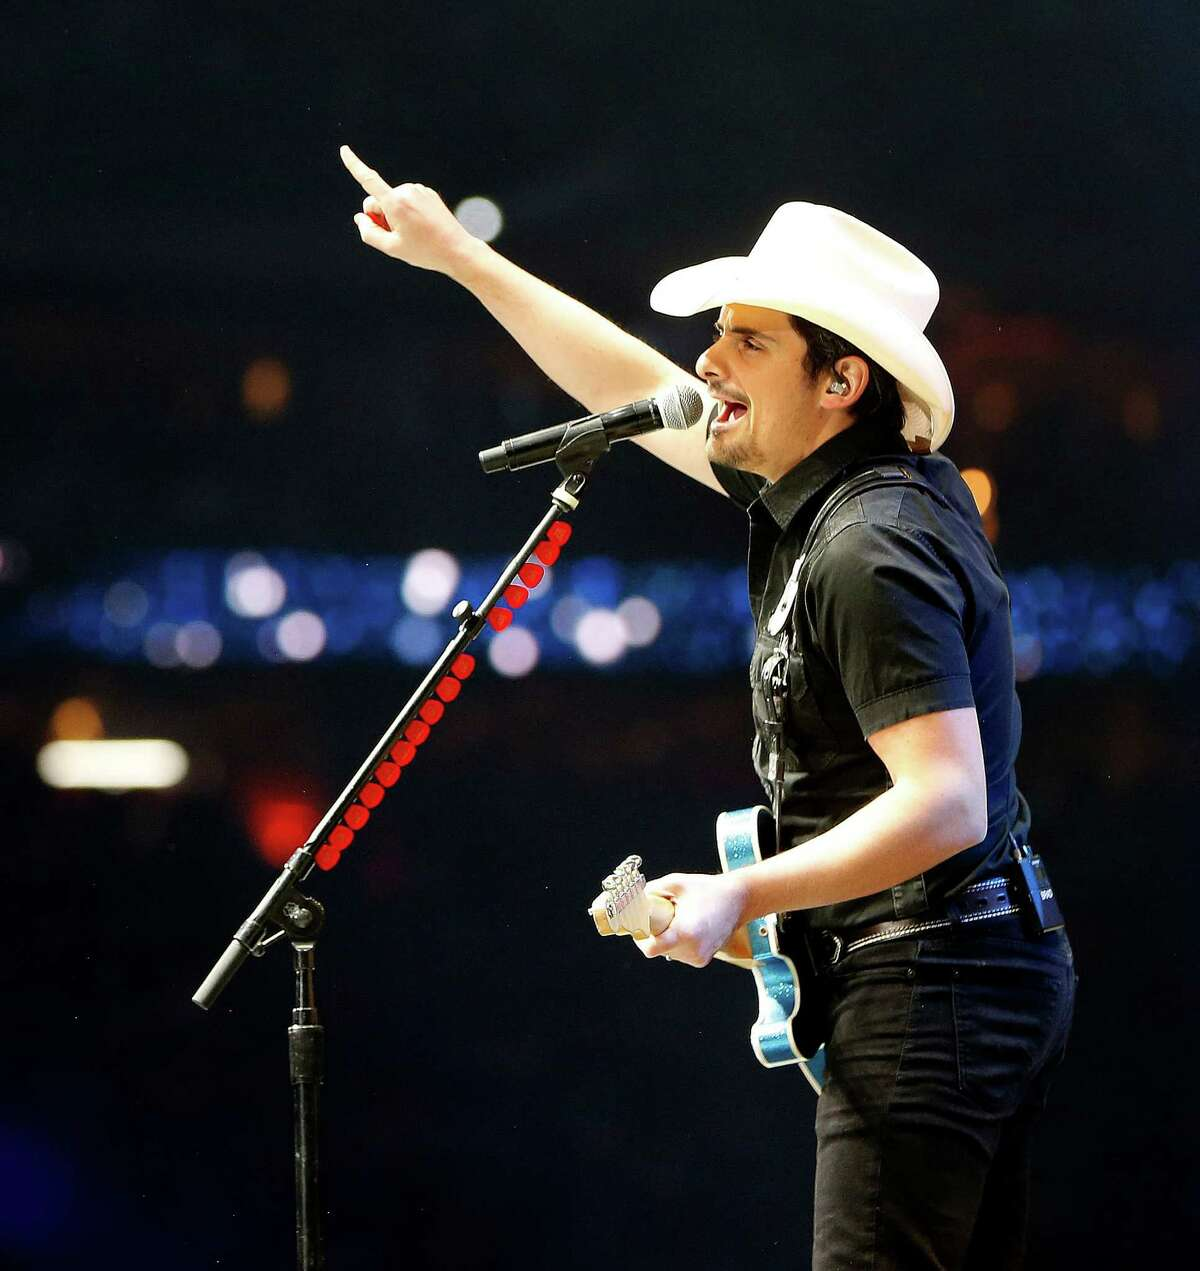 Brad Paisley performs at the Houston Livestock Show and Rodeo in NRG Stadium, Saturday, March 19, 2016.